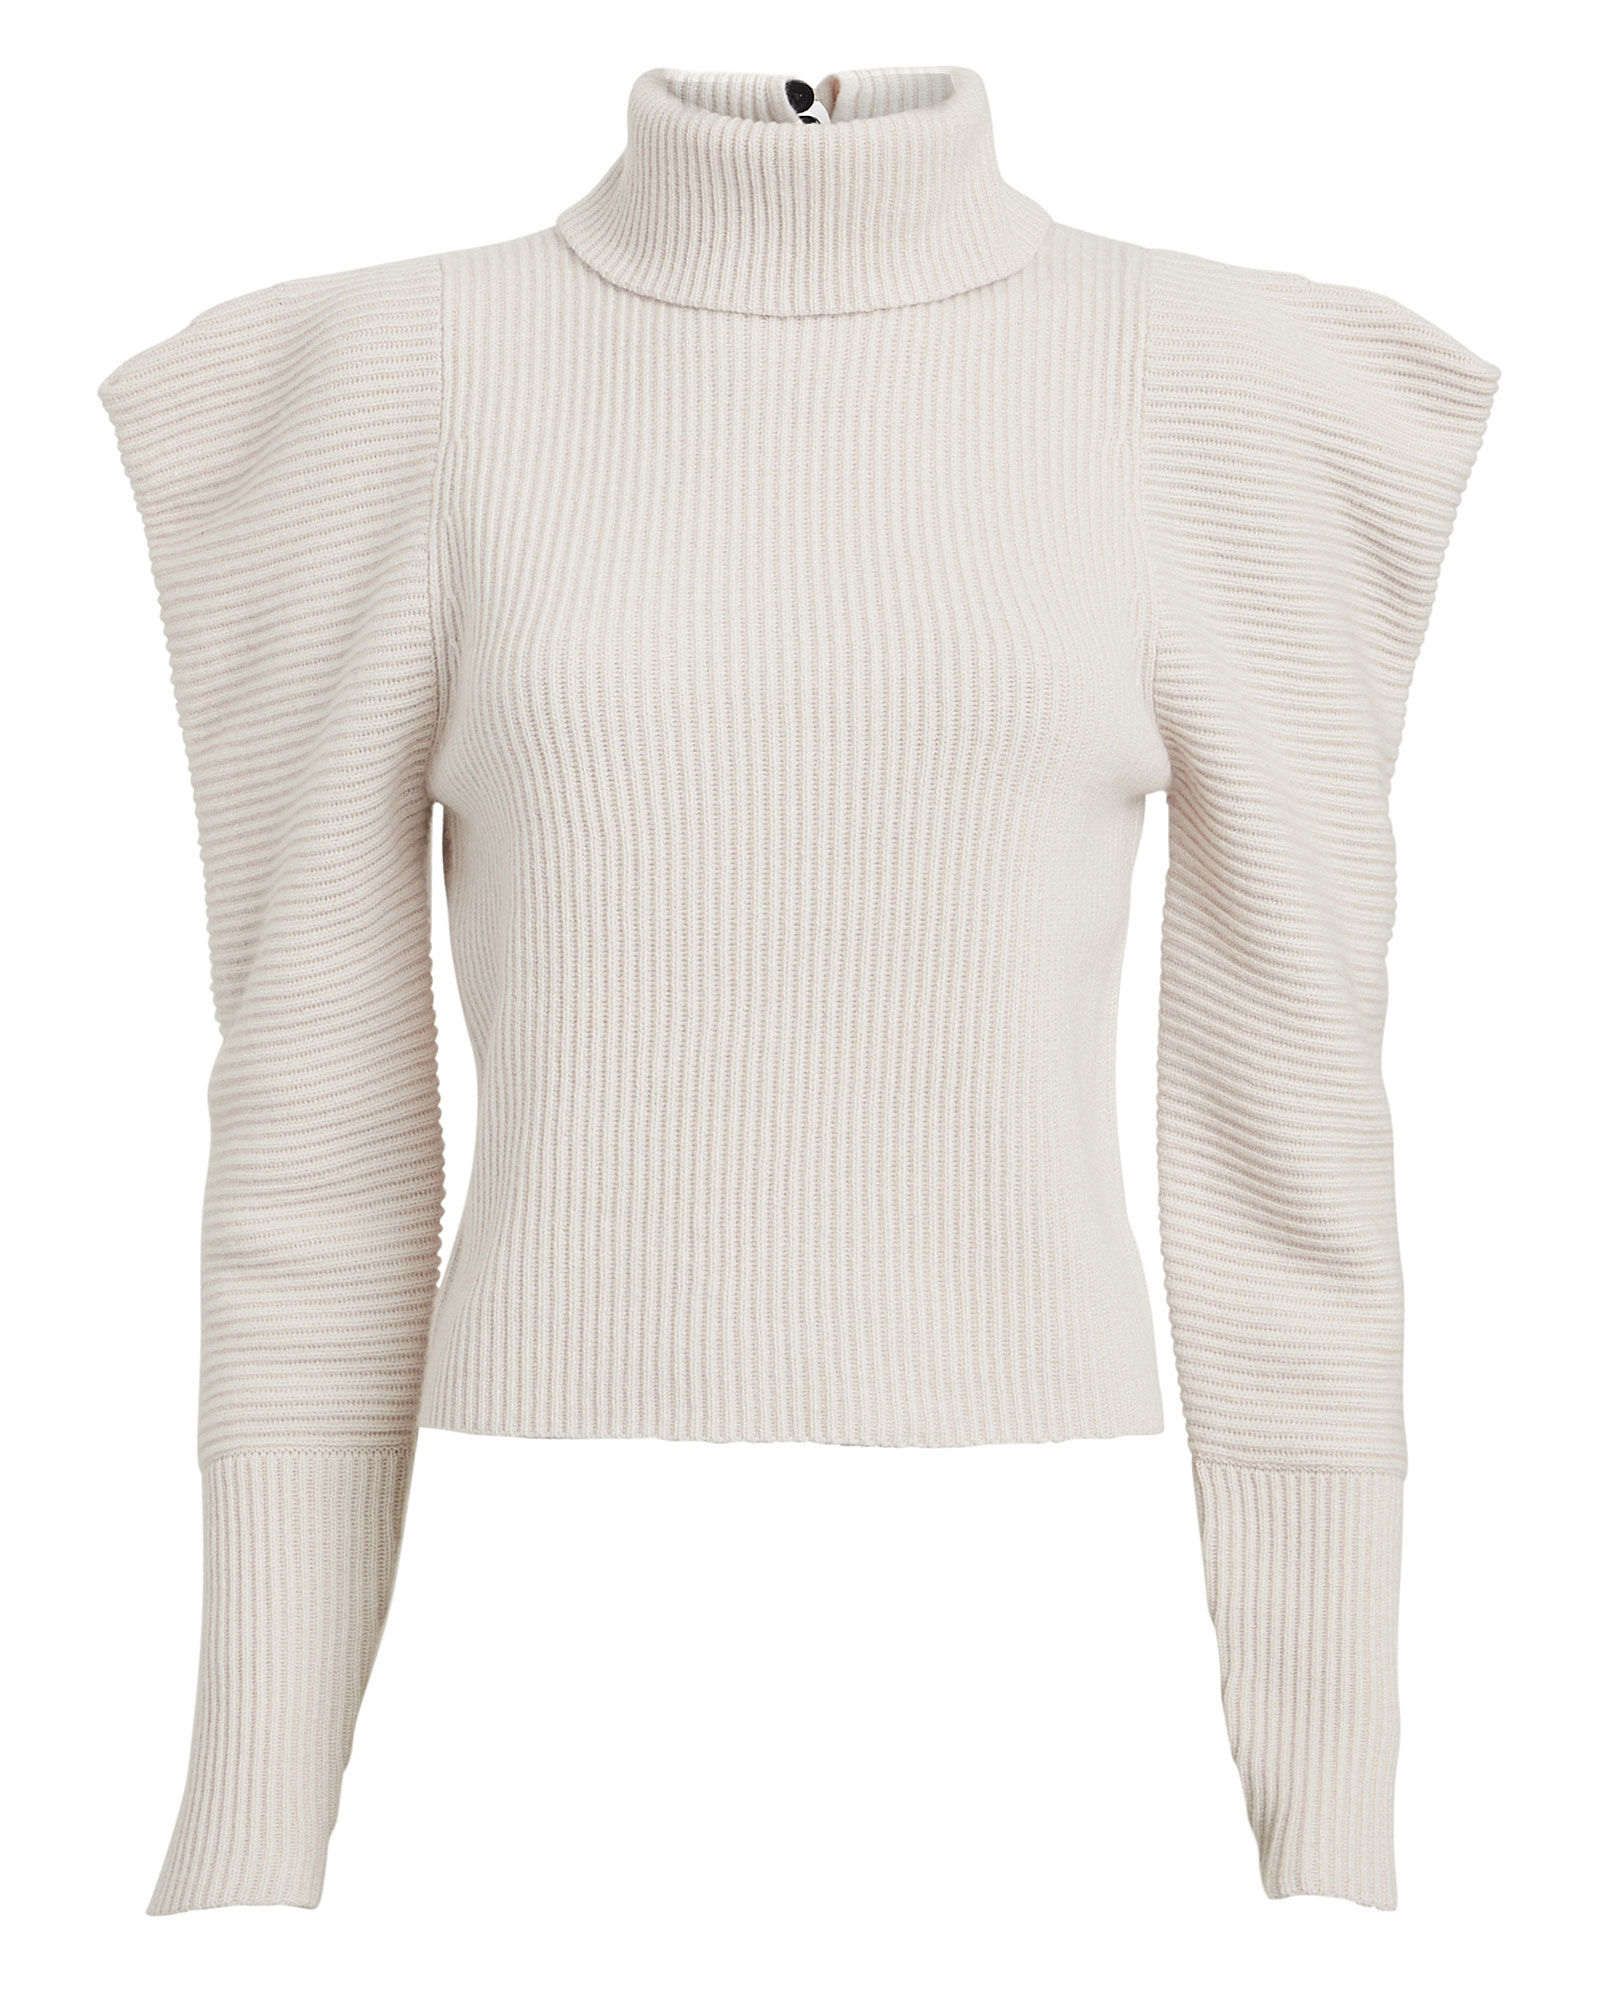 Maura Wool-Cashmere Sweater, OATMEAL, hi-res